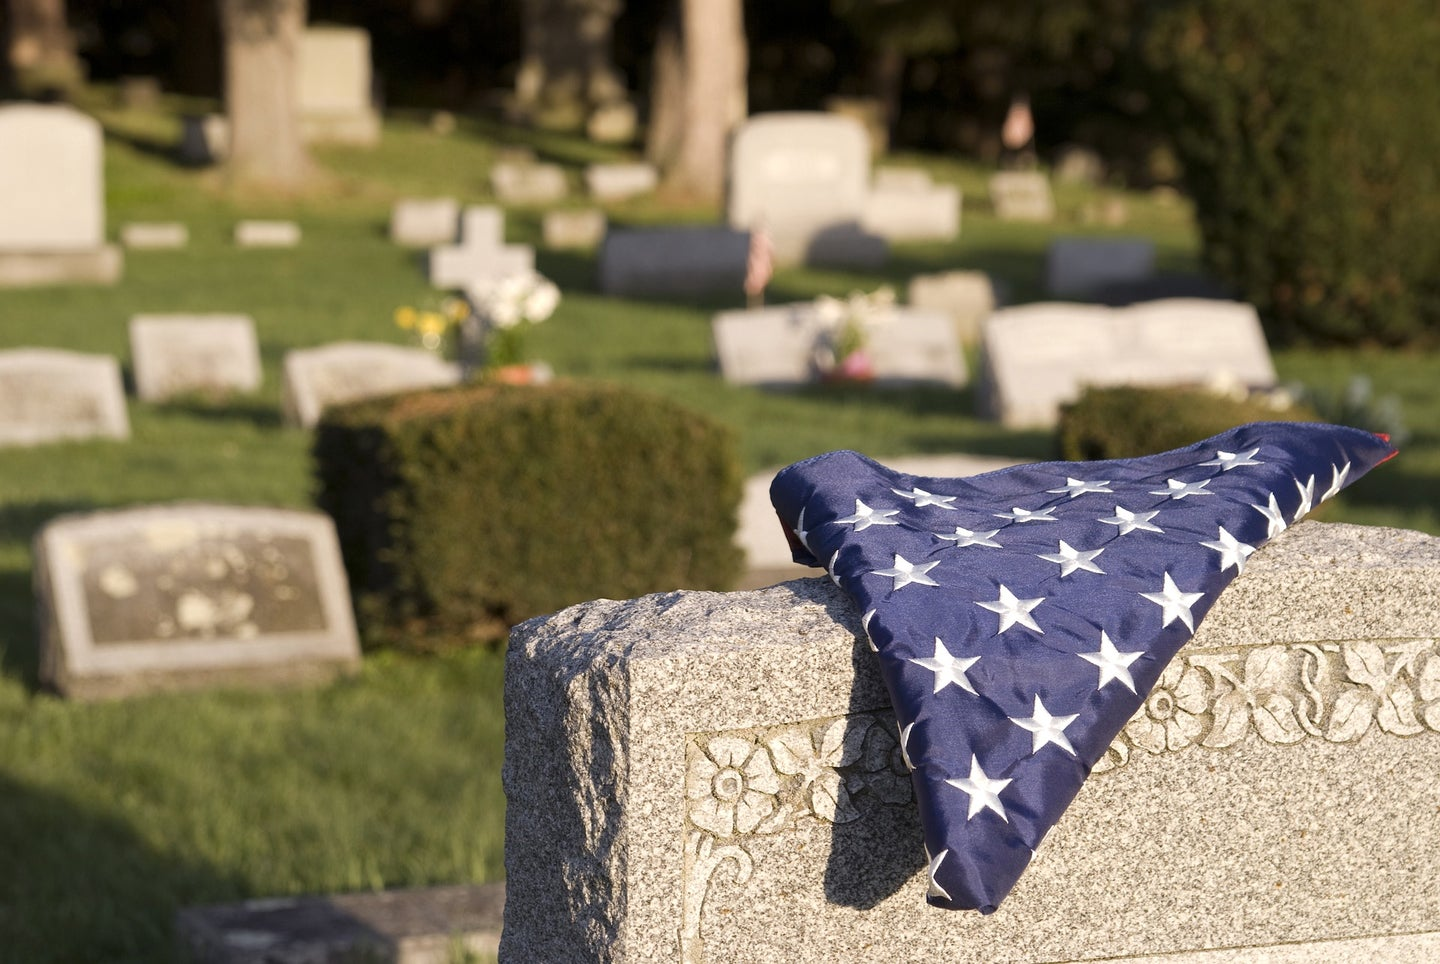 A folded American flag rests on top of a grave stone, with other gravestones in the background.